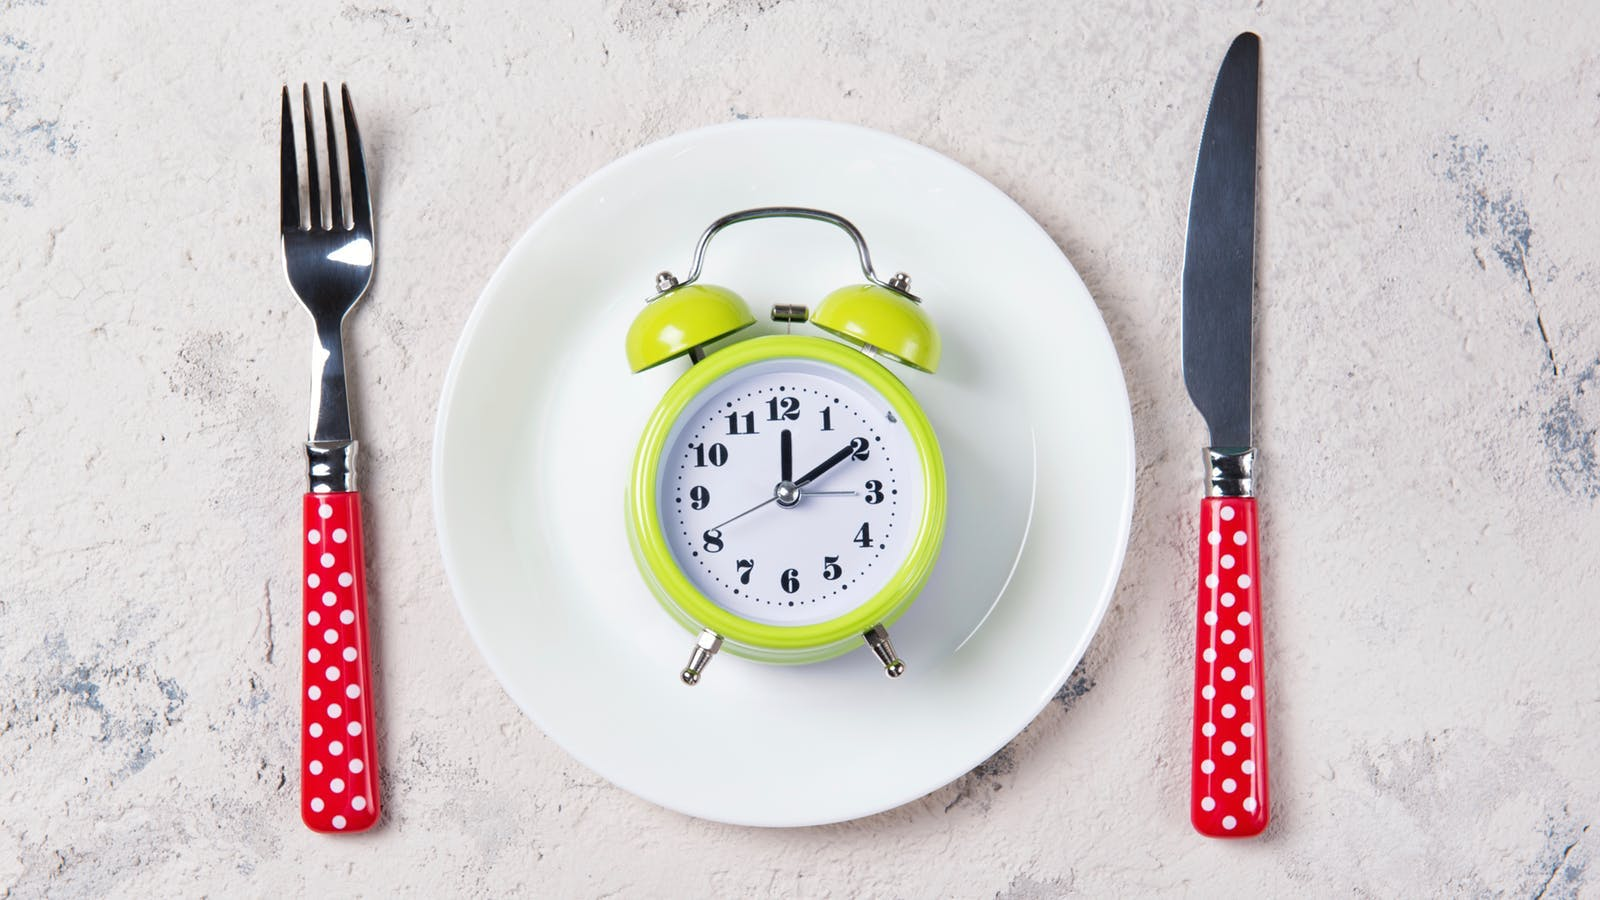 Alarm clock with bells on the plate with fork and knife, lunch time concept, top view with copy space